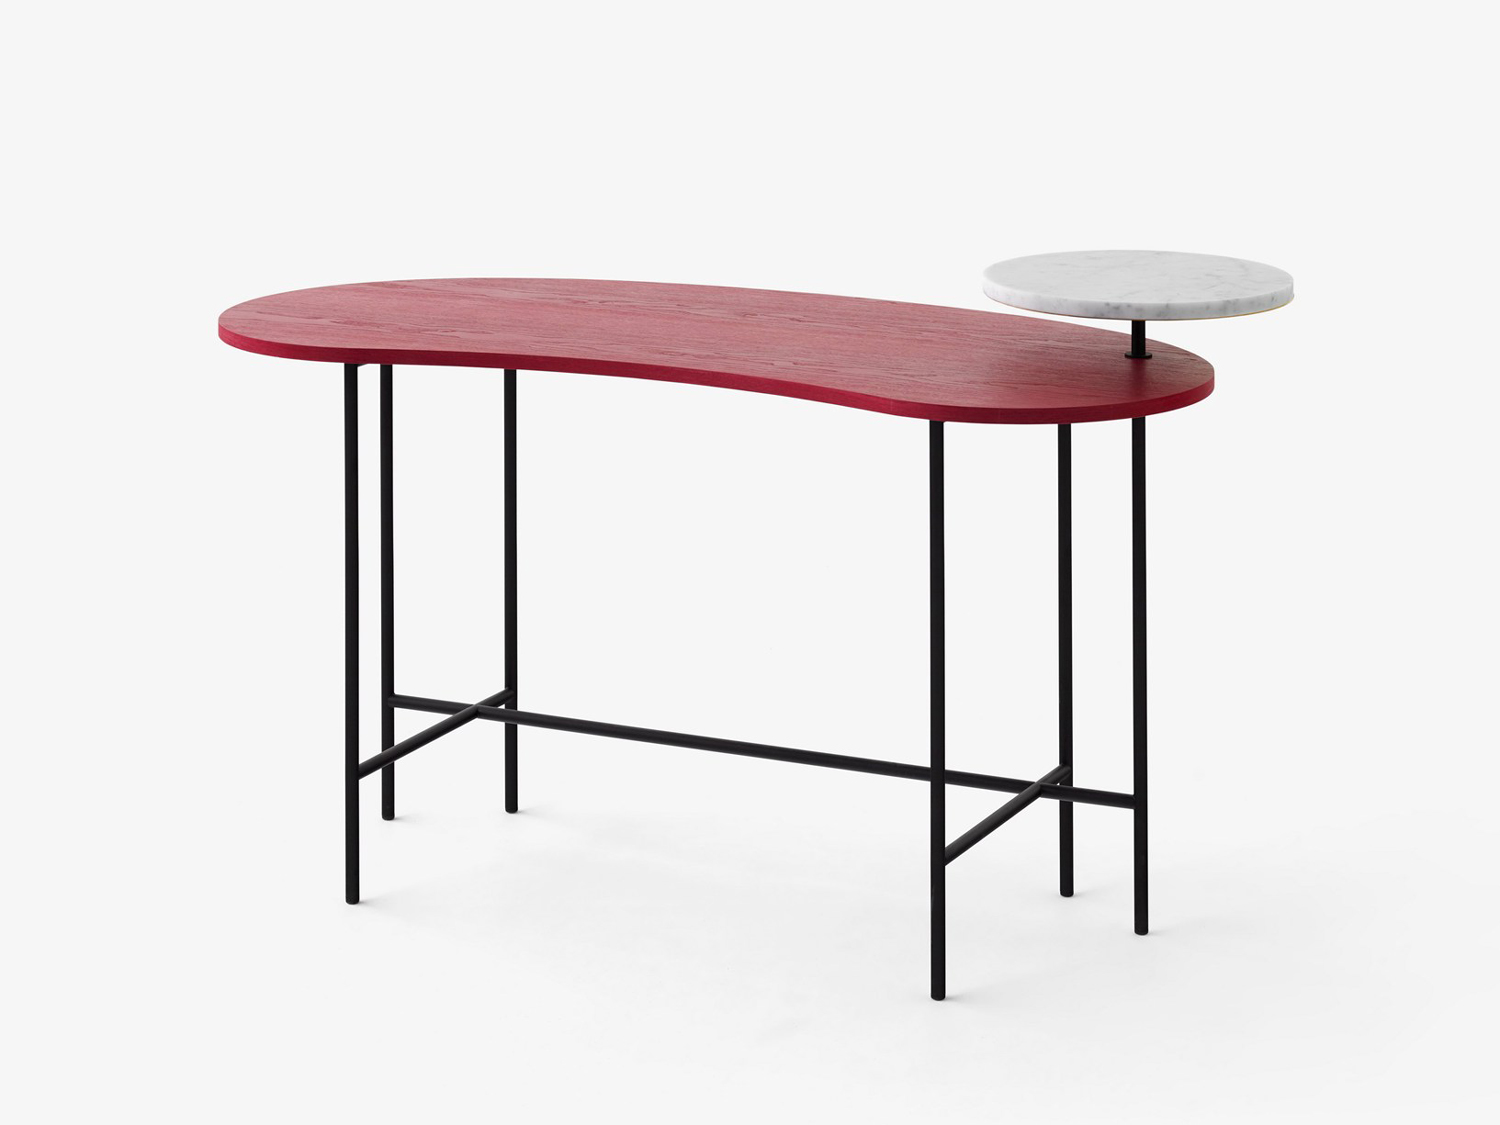 Palette Desk by Jaime Hayon for &tradition | Yellowtrace